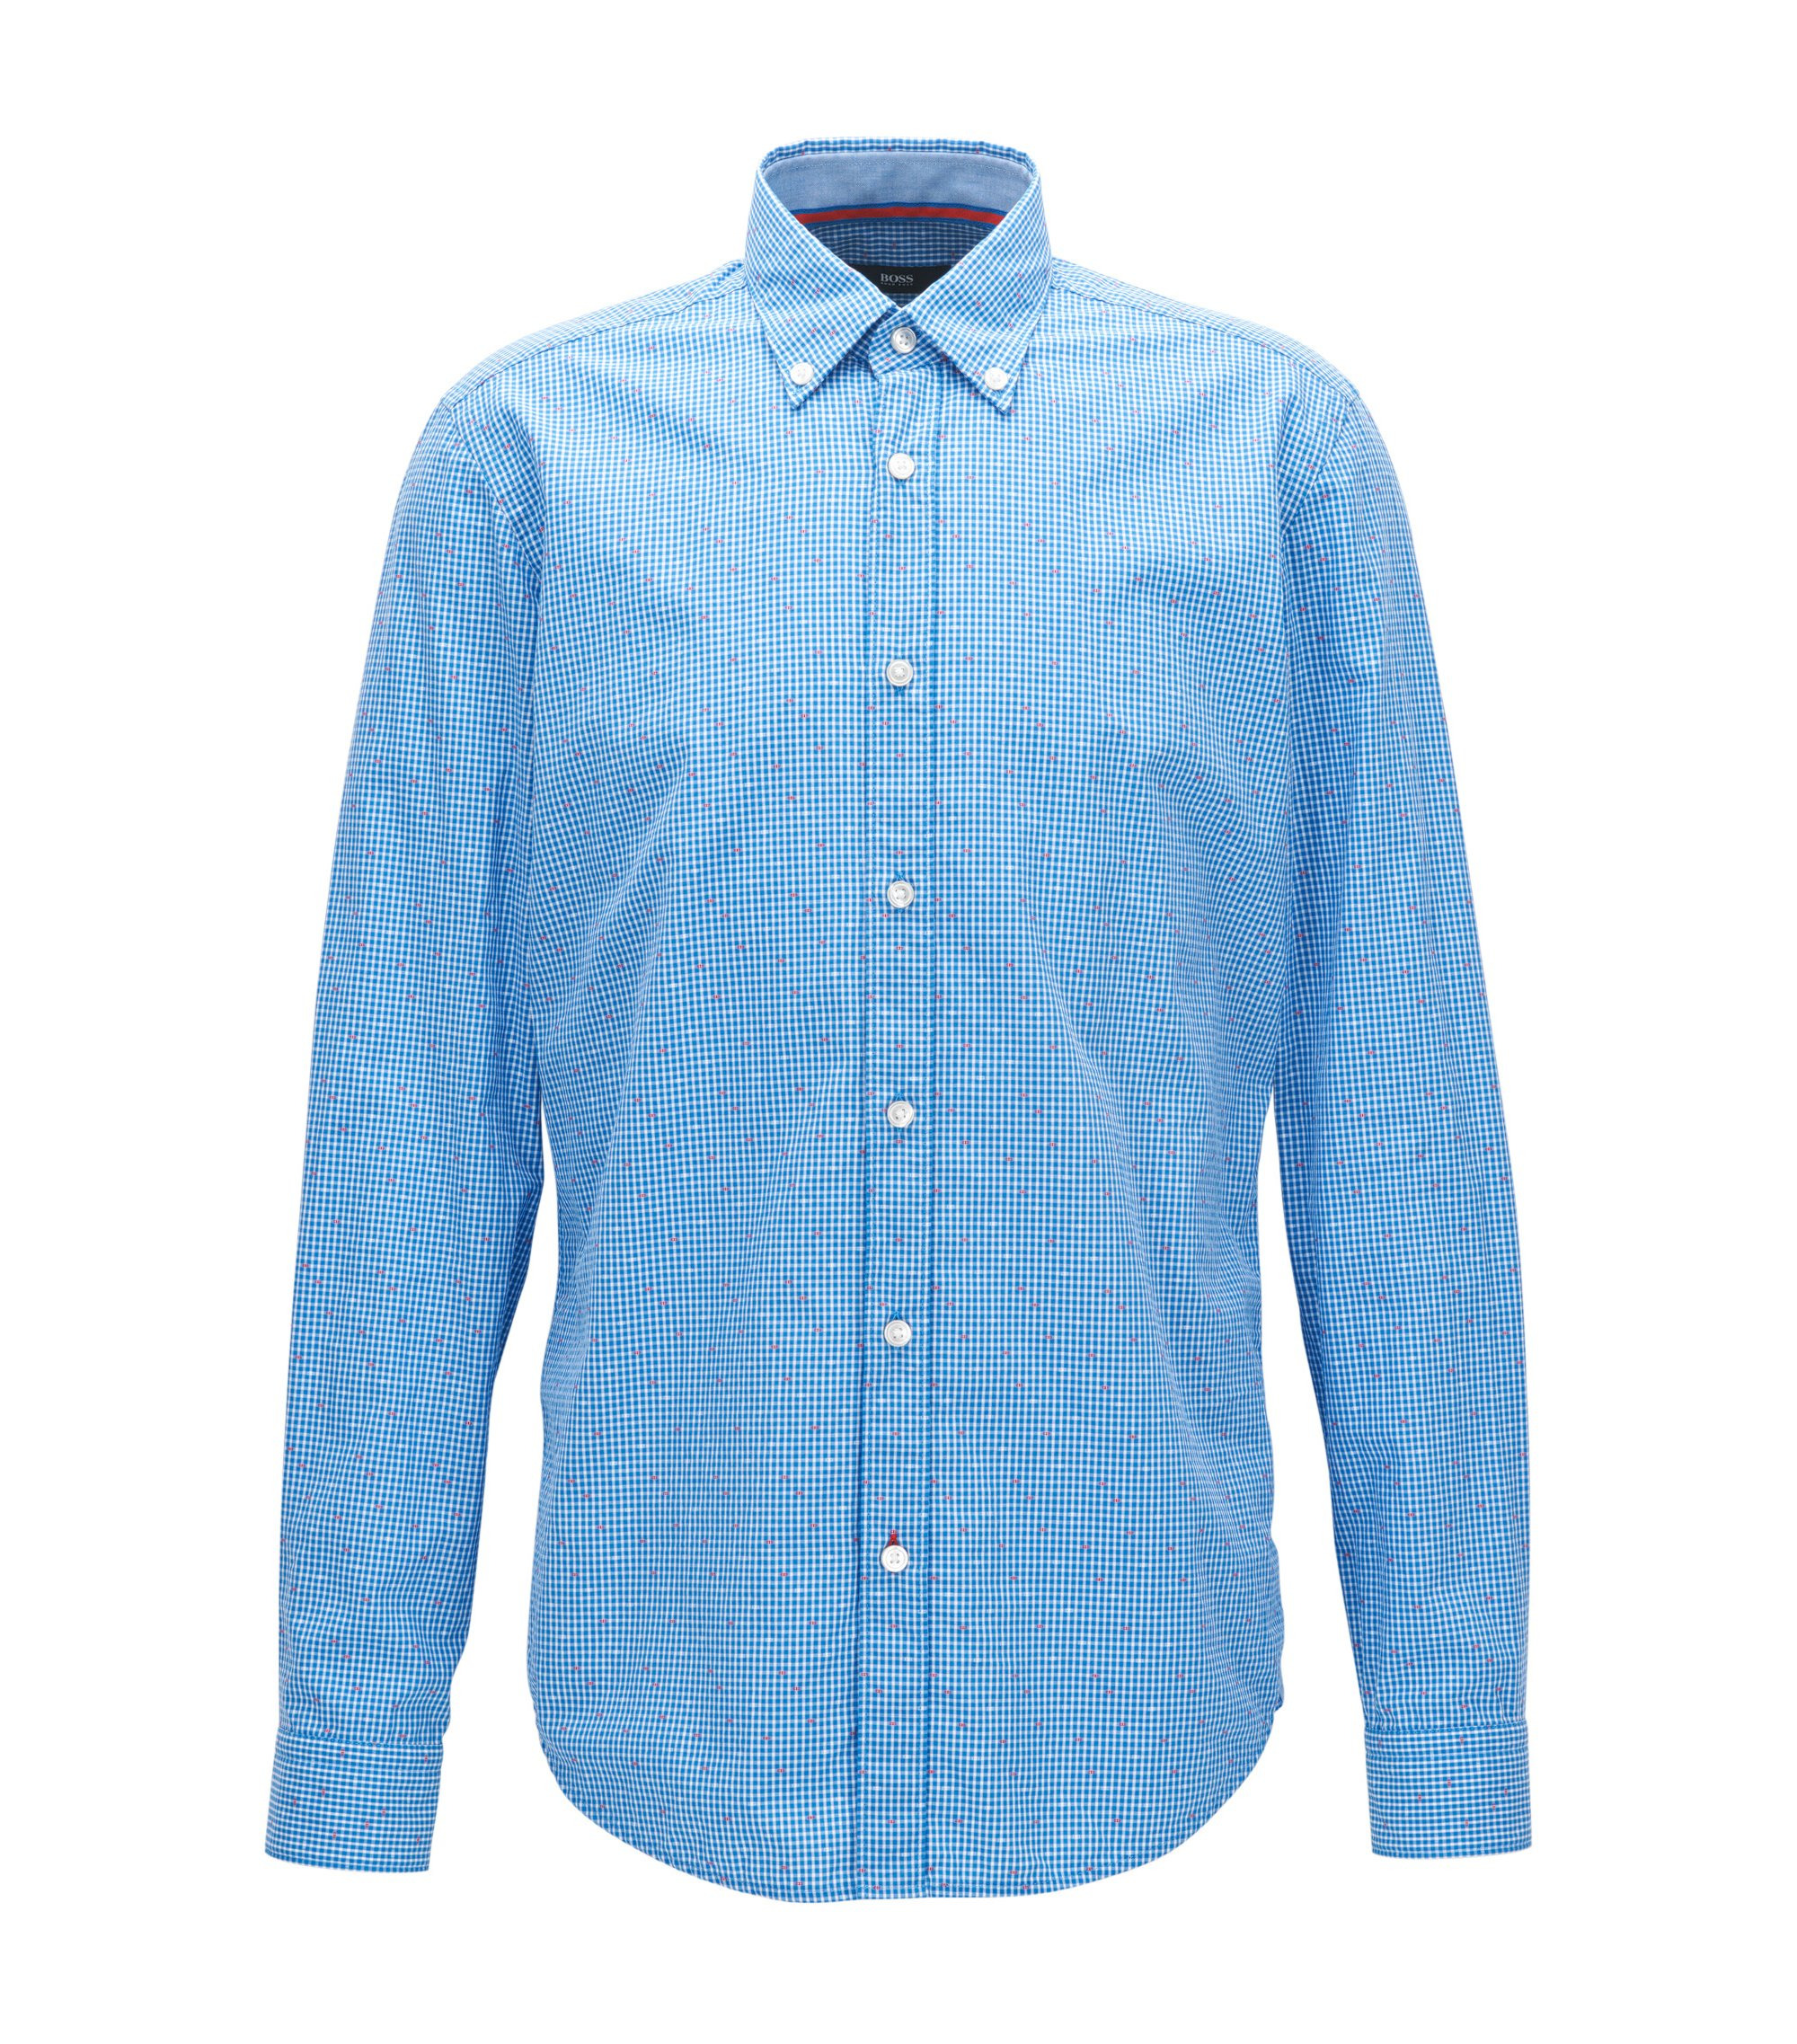 Patterned Cotton Sport Shirt, Regular Fit | Lod, Blue